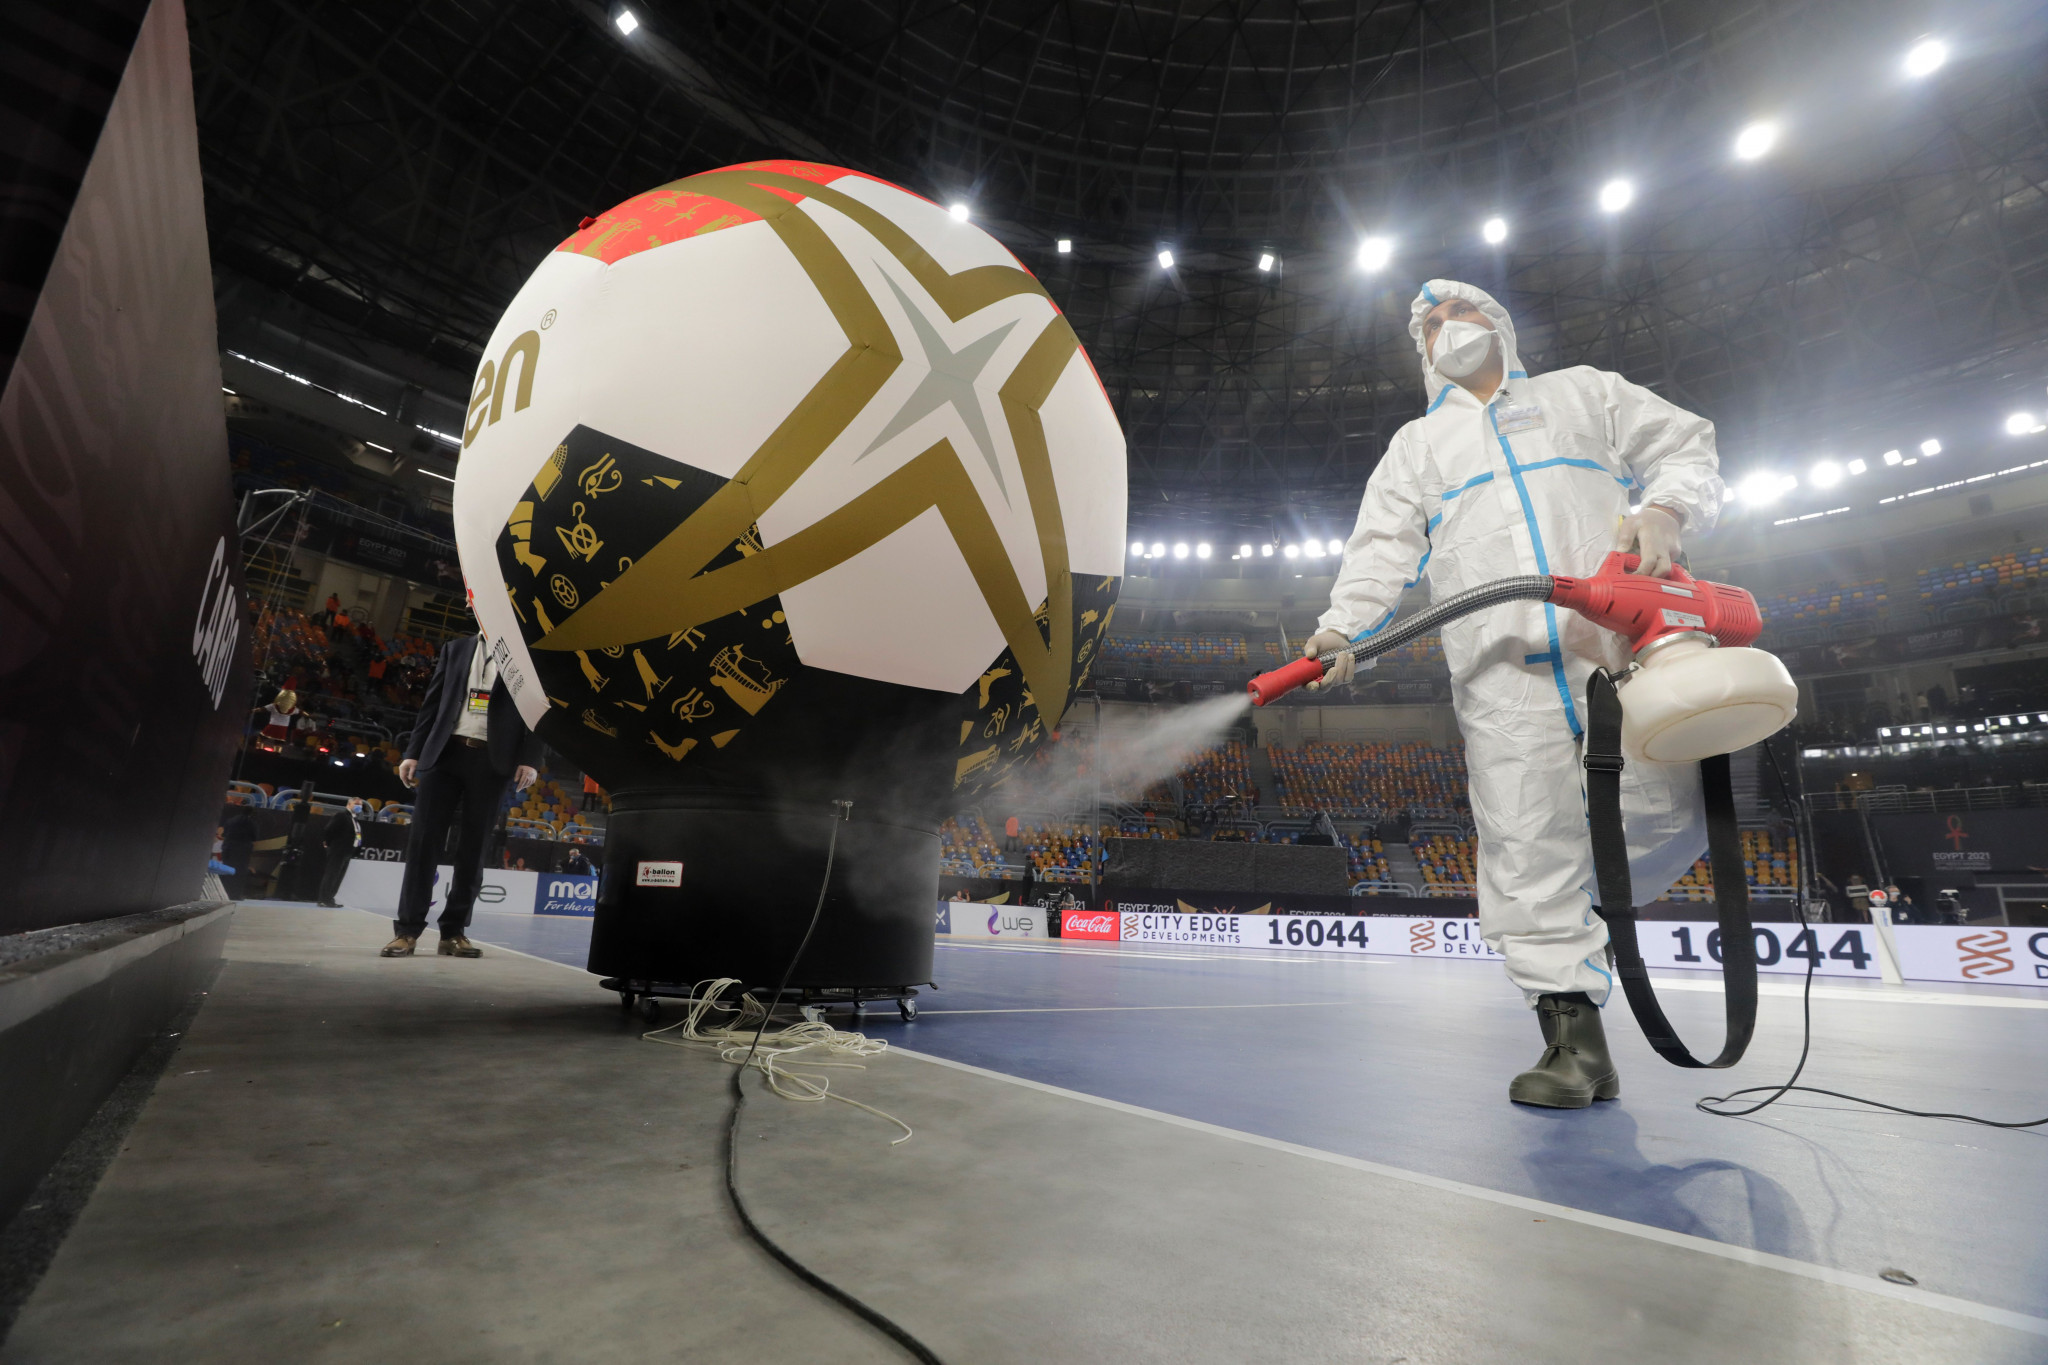 The IHF World Championship took place in Cairo under strict COVID-19 protocols to ensure players and officials were kept safe ©Getty Images